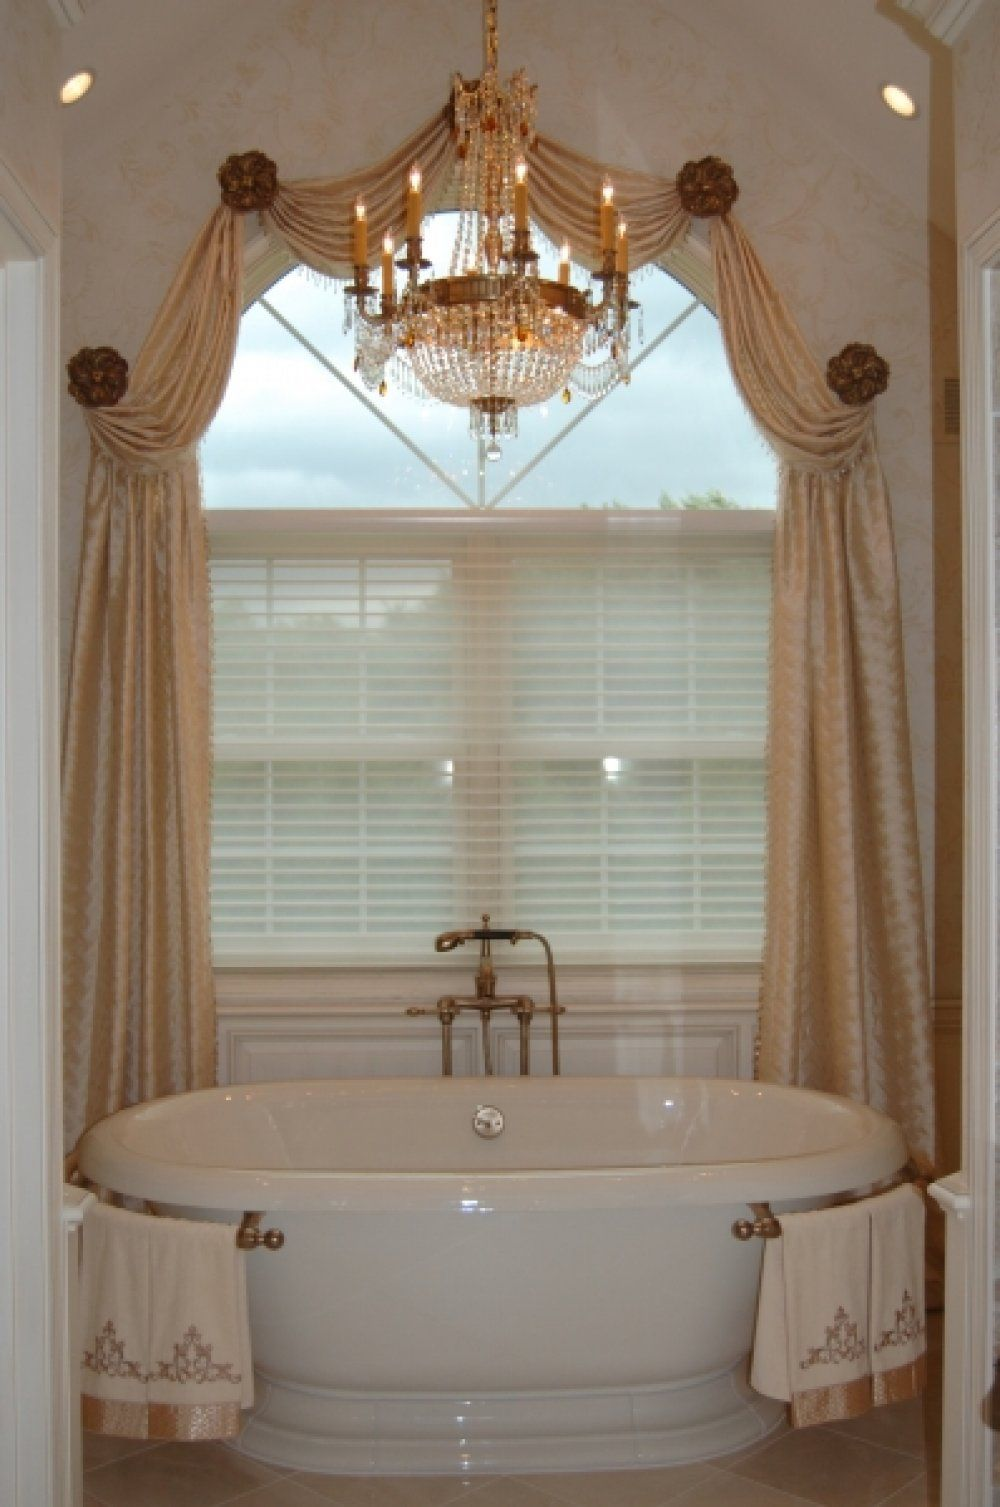 Bathroom window treatments wow interiors windows pinterest towels bar and window treatments Bathroom valances for windows